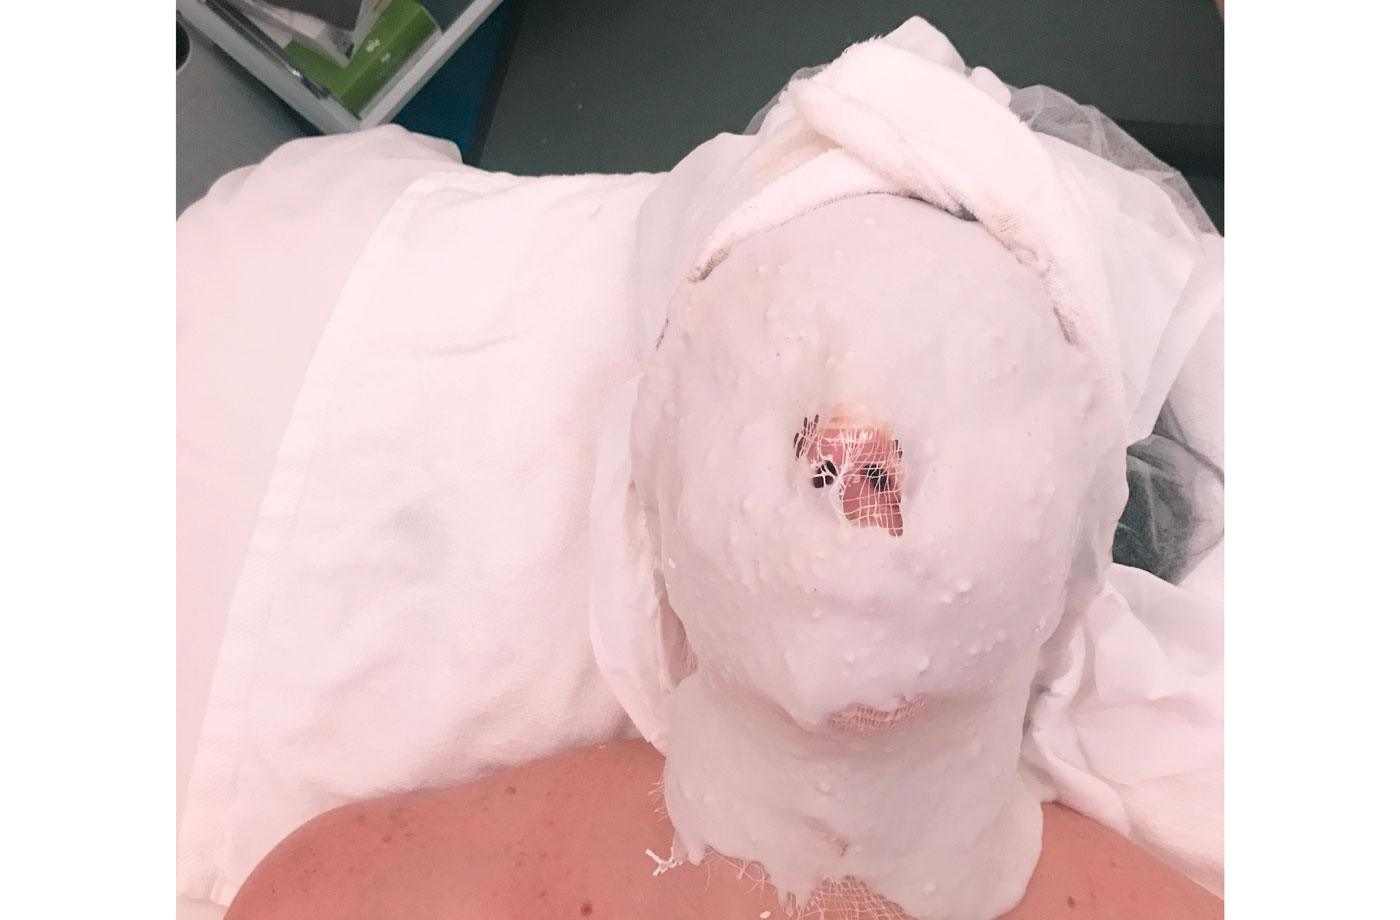 Thumbnail for I tried a digital detox facial meant to undo the damage blue light causes